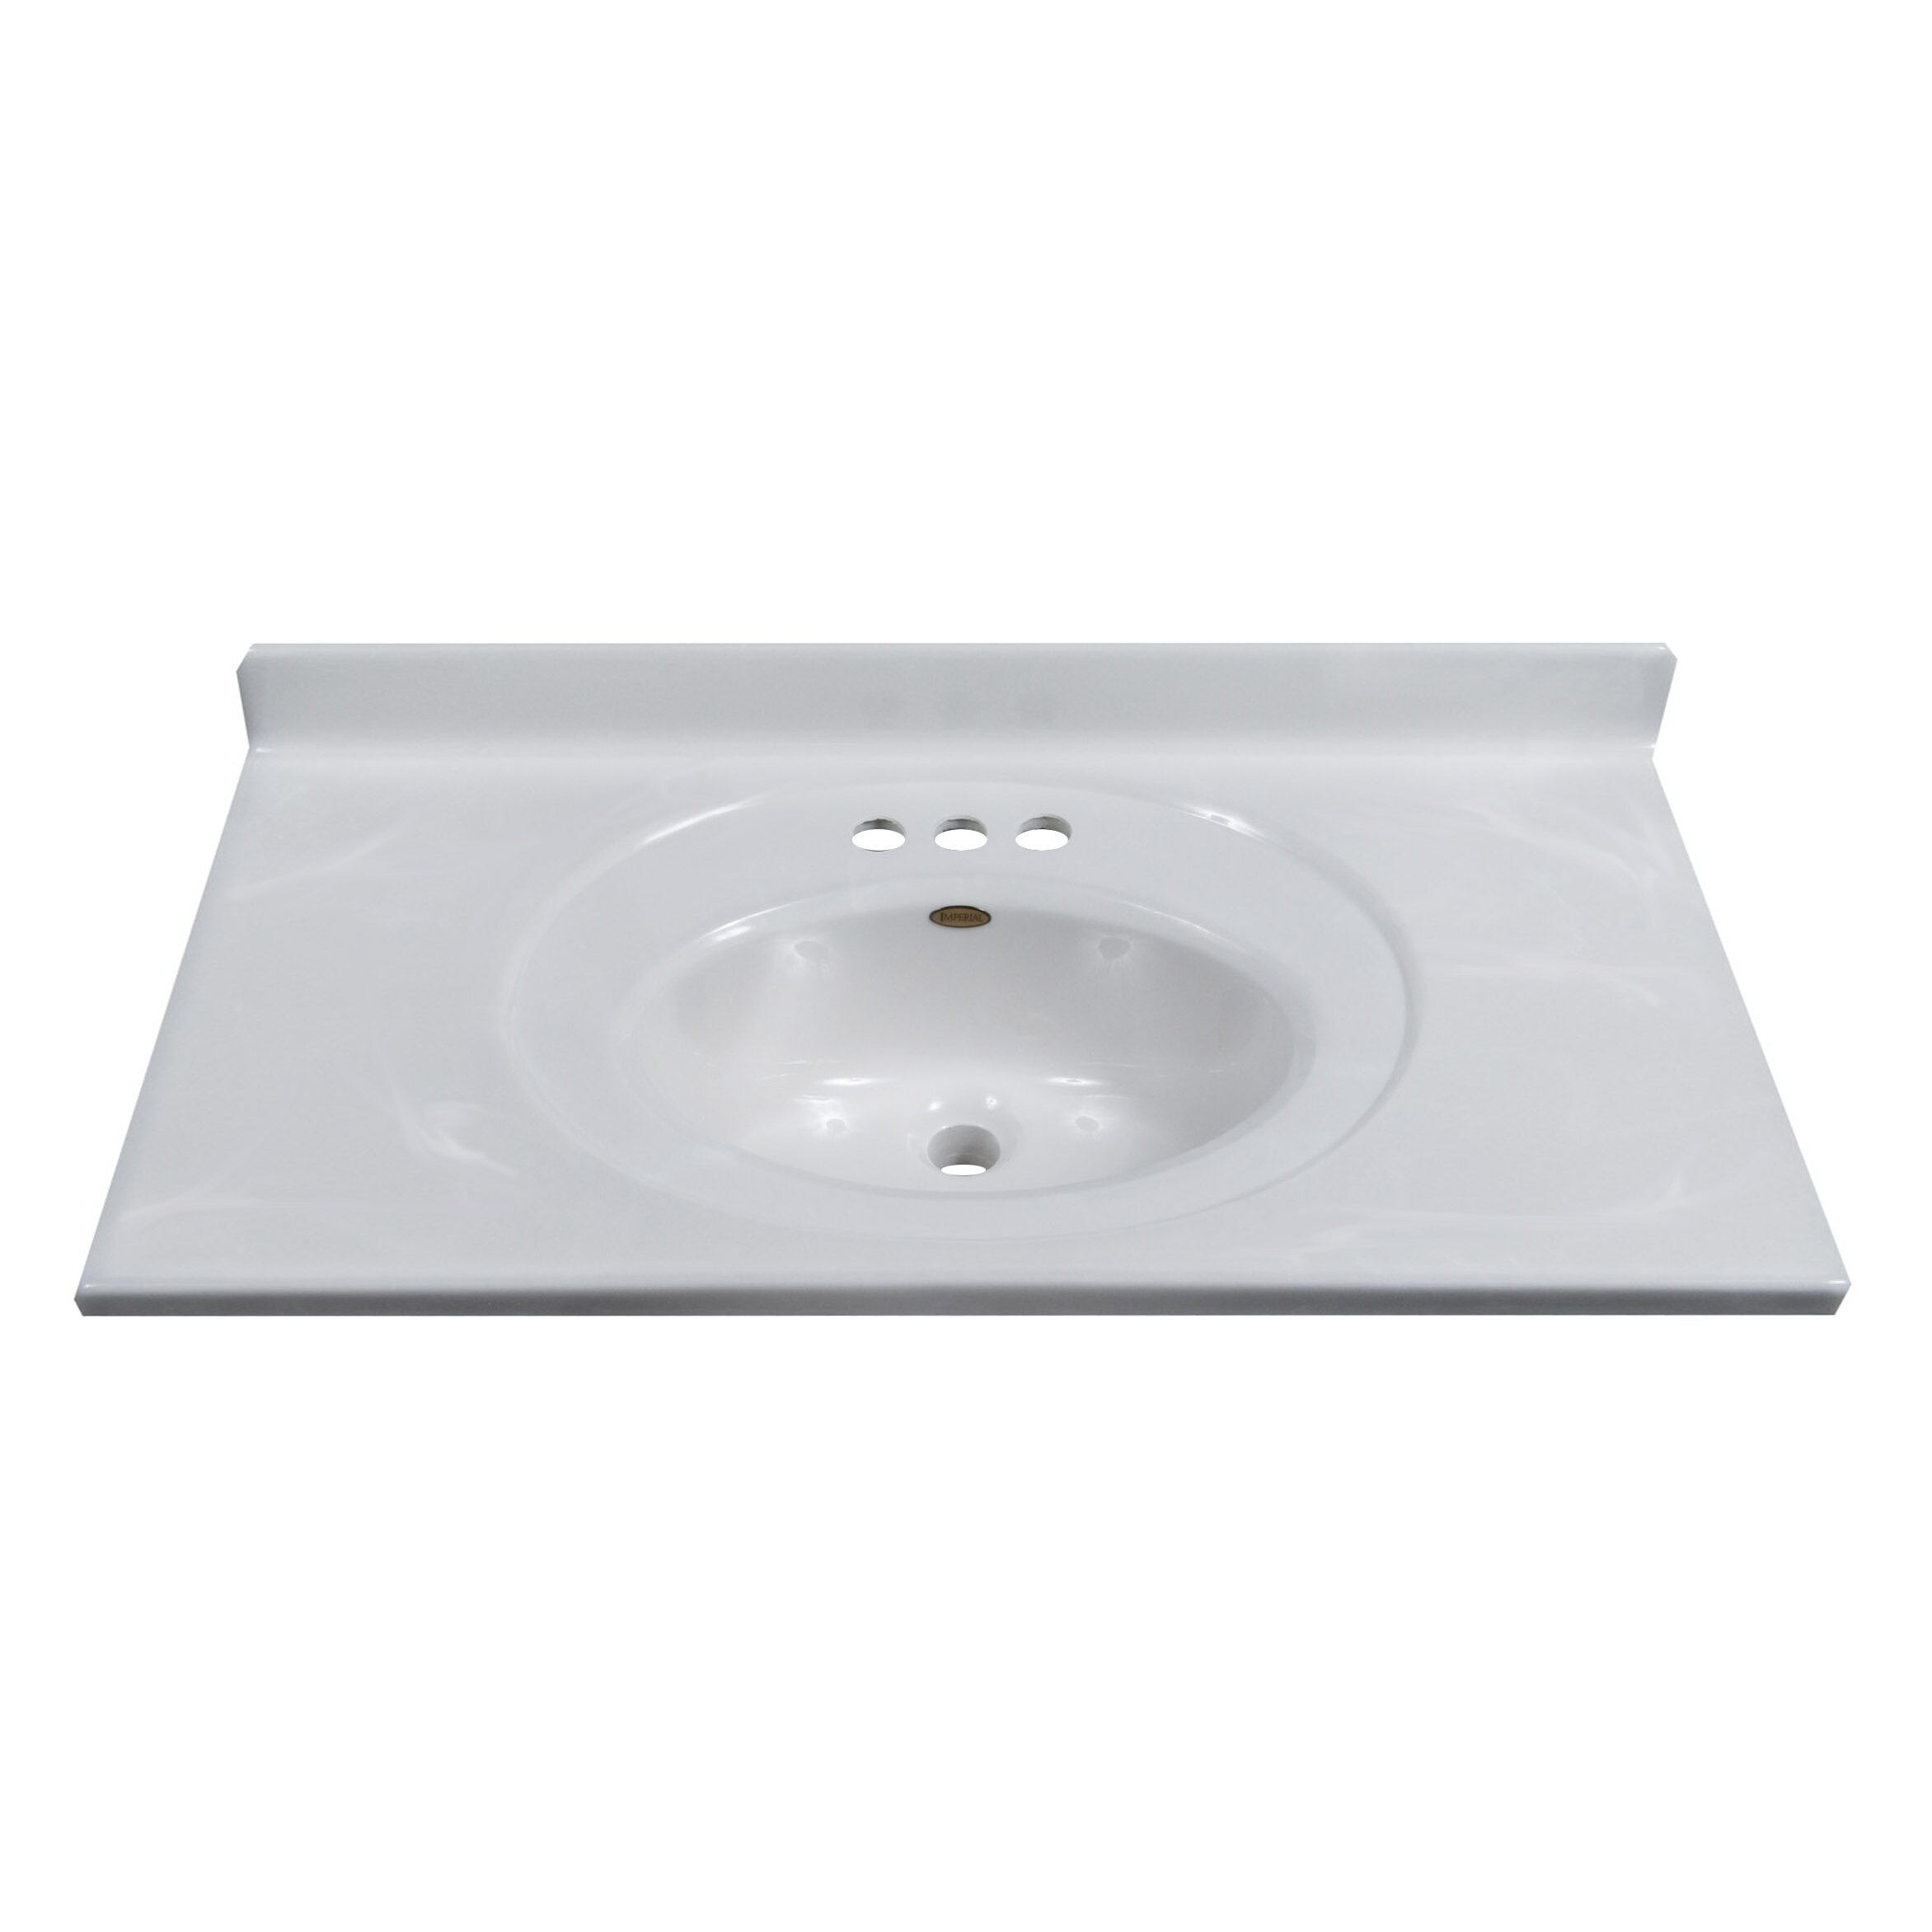 """Imperial 37"""" Vanity Top with Recessed Center Oval Bowl in White on White"""